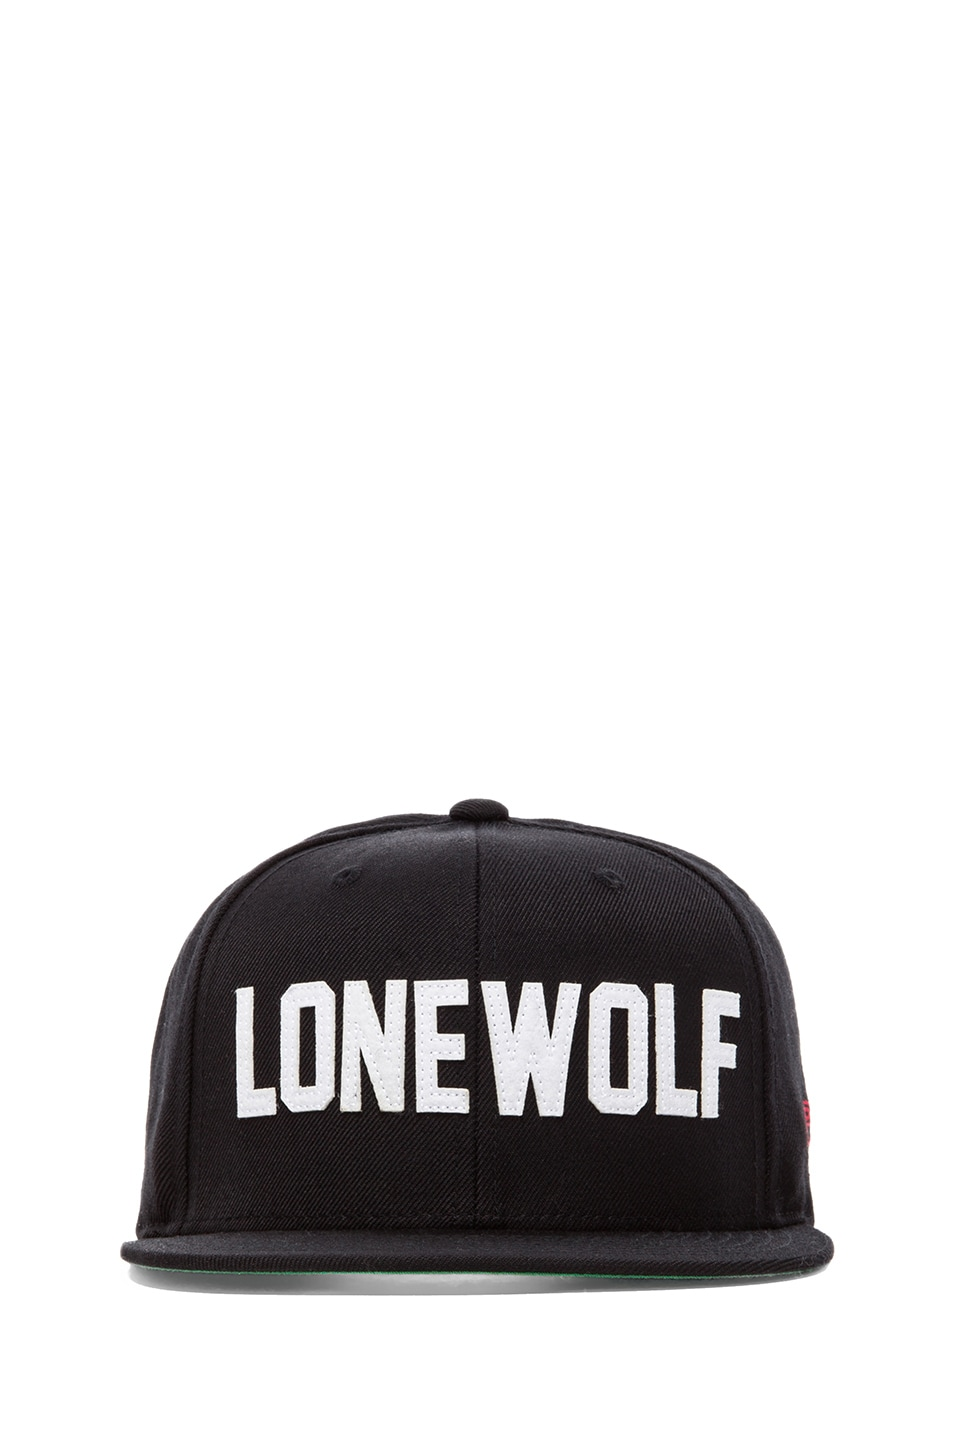 SSUR Lonewolf Snapback in Black